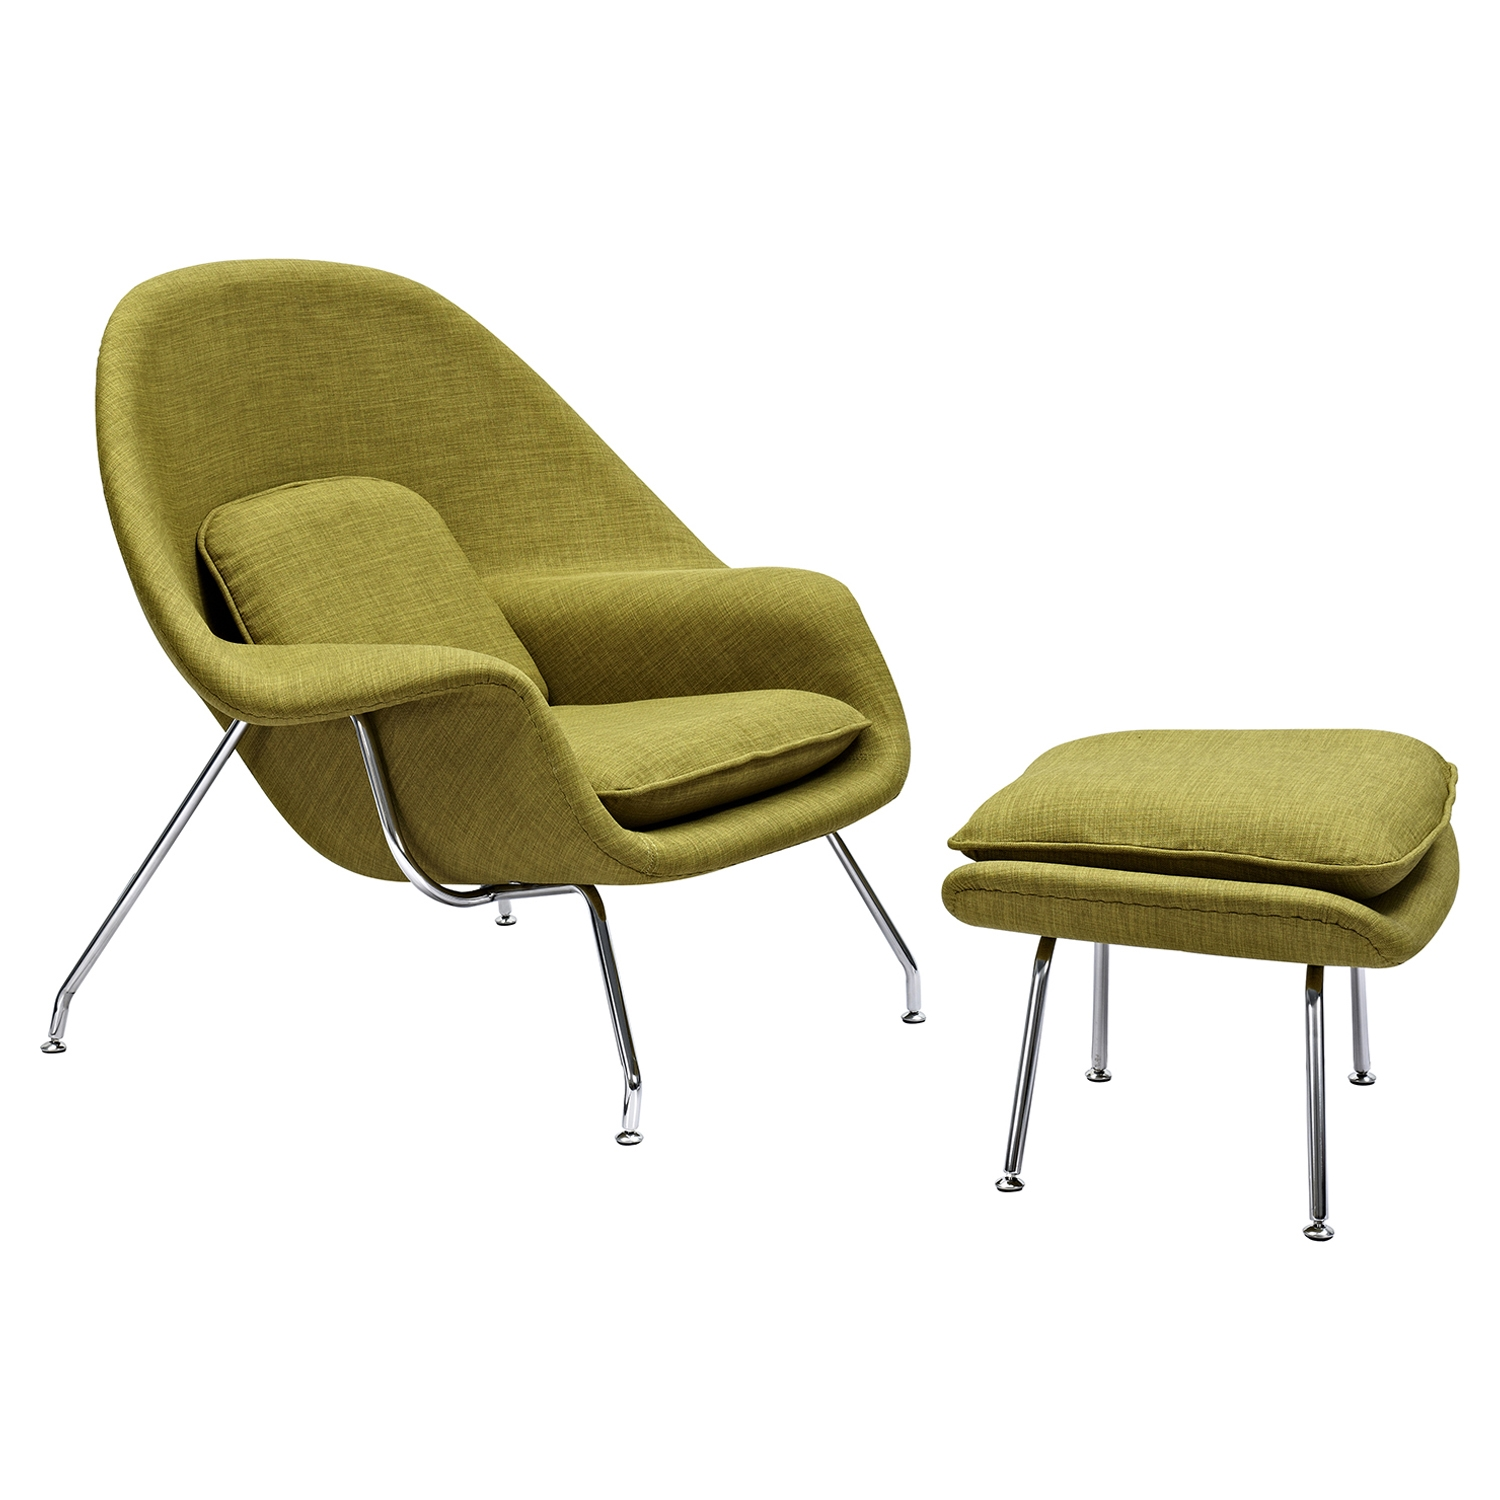 Green Upholstered Chair Saro Upholstered Chair Avocado Green